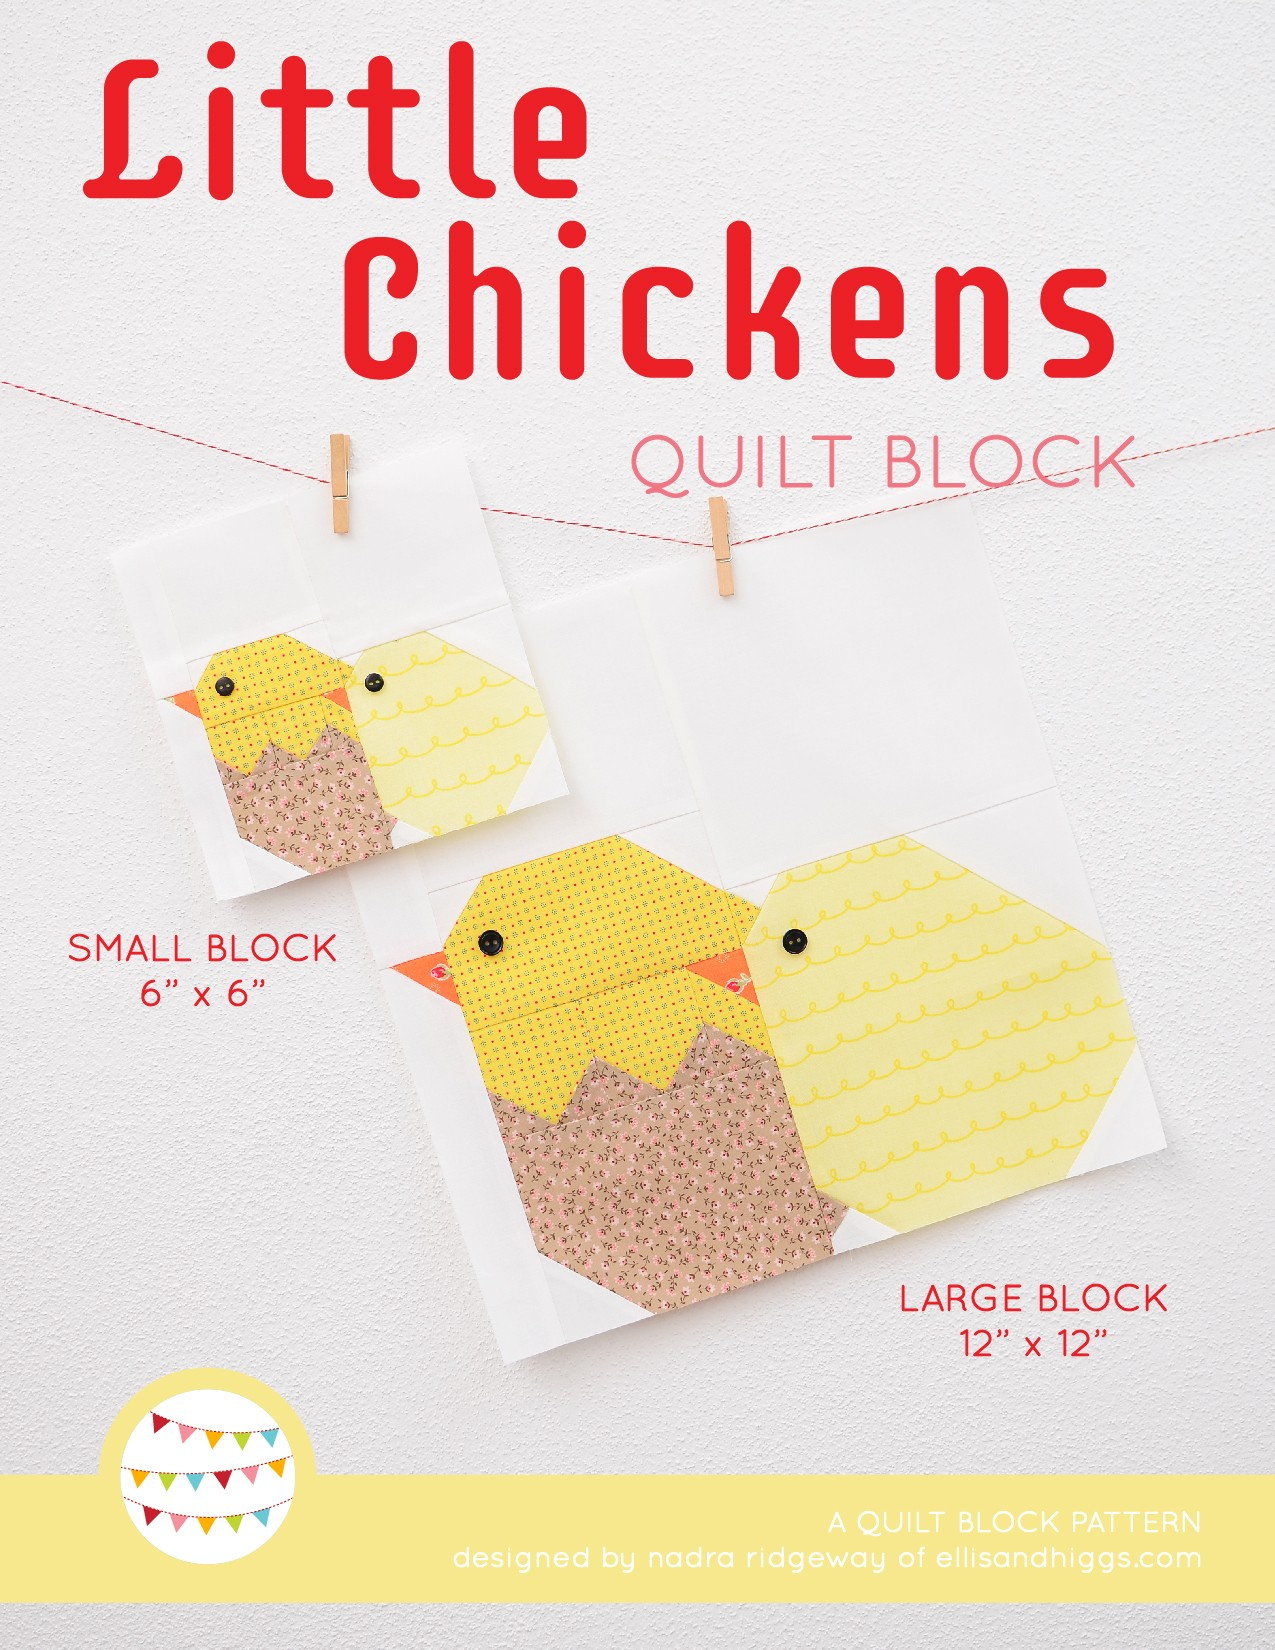 Little Chickens Quilt Block - Easter Quilt Pattern